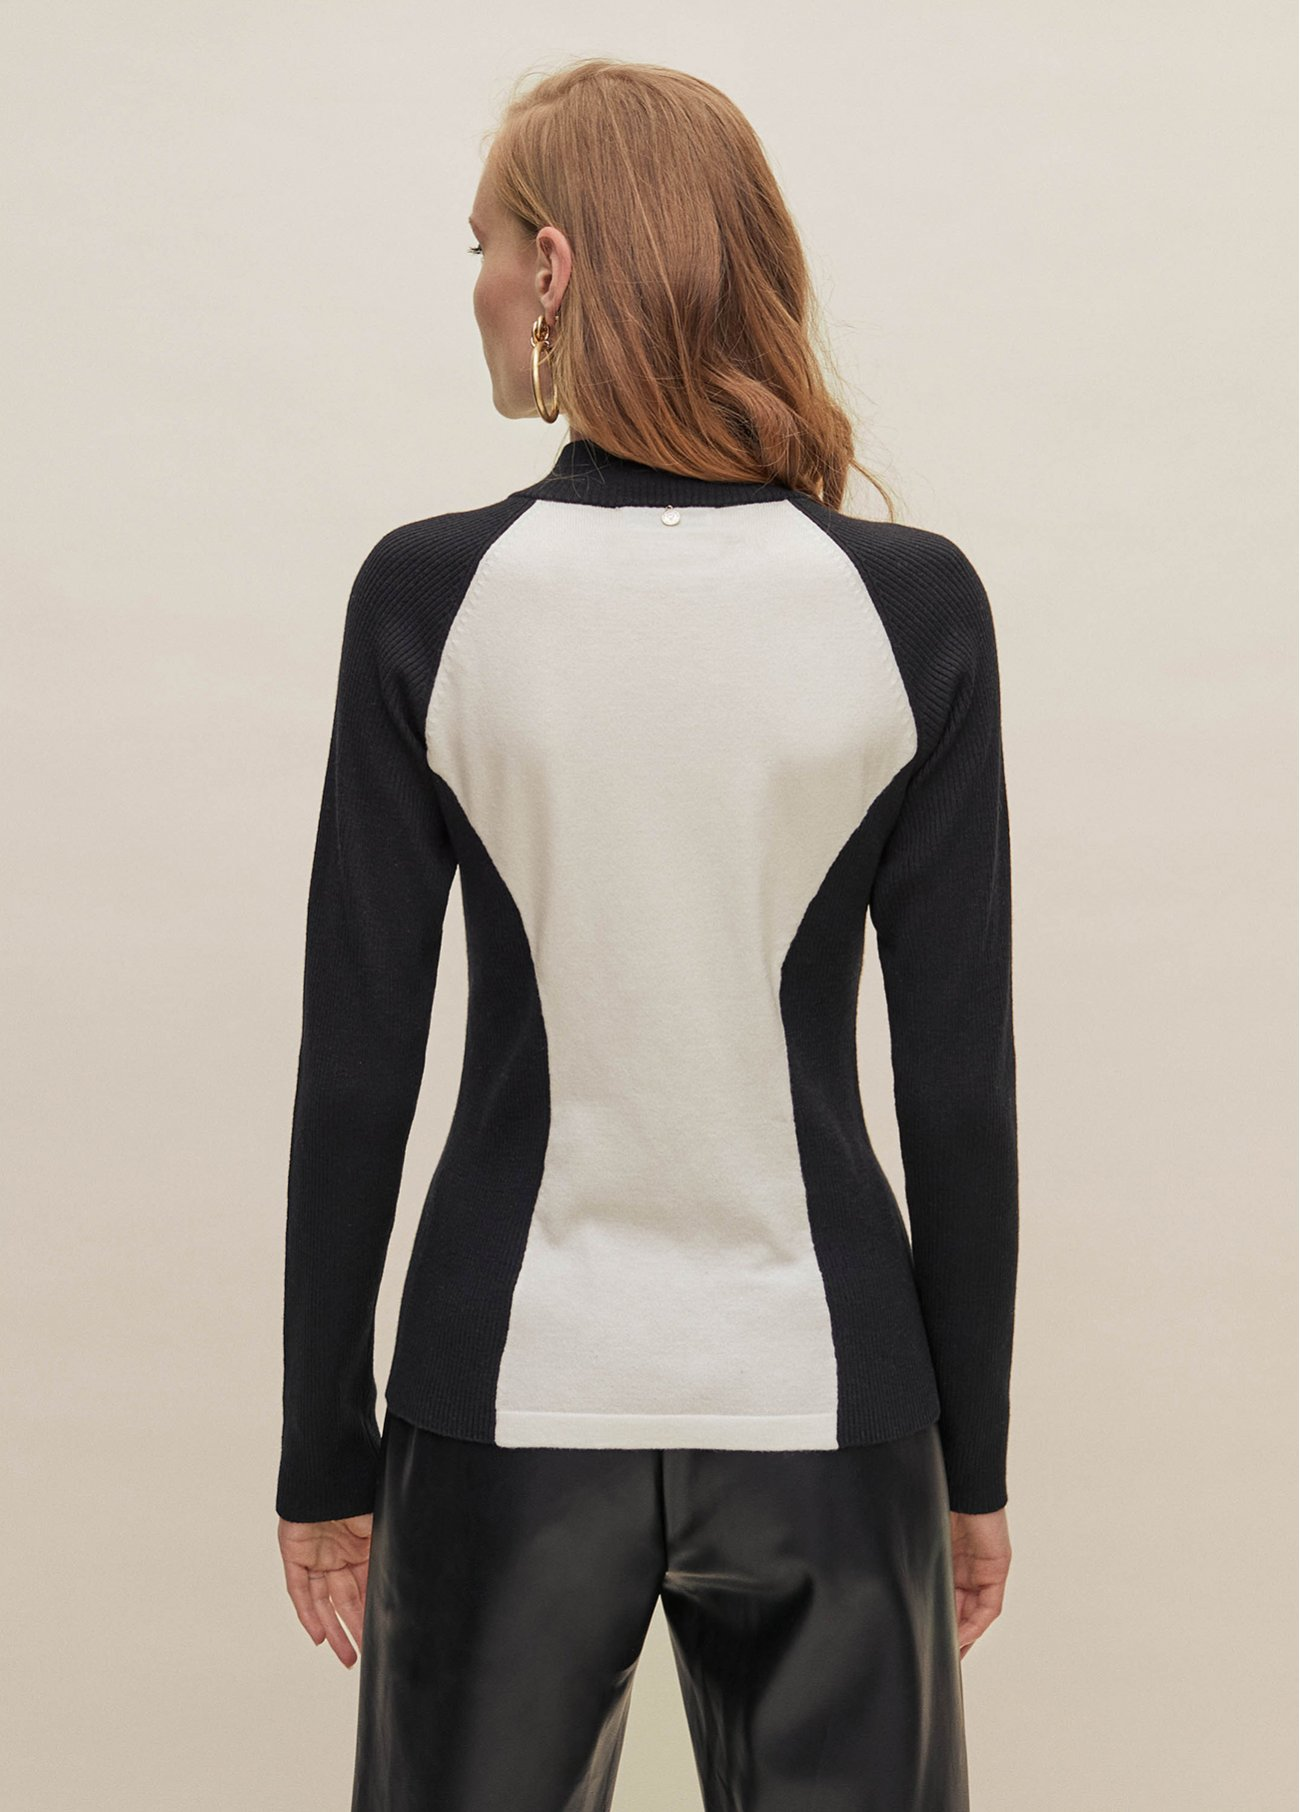 Bicolor pull over with zipper at neck